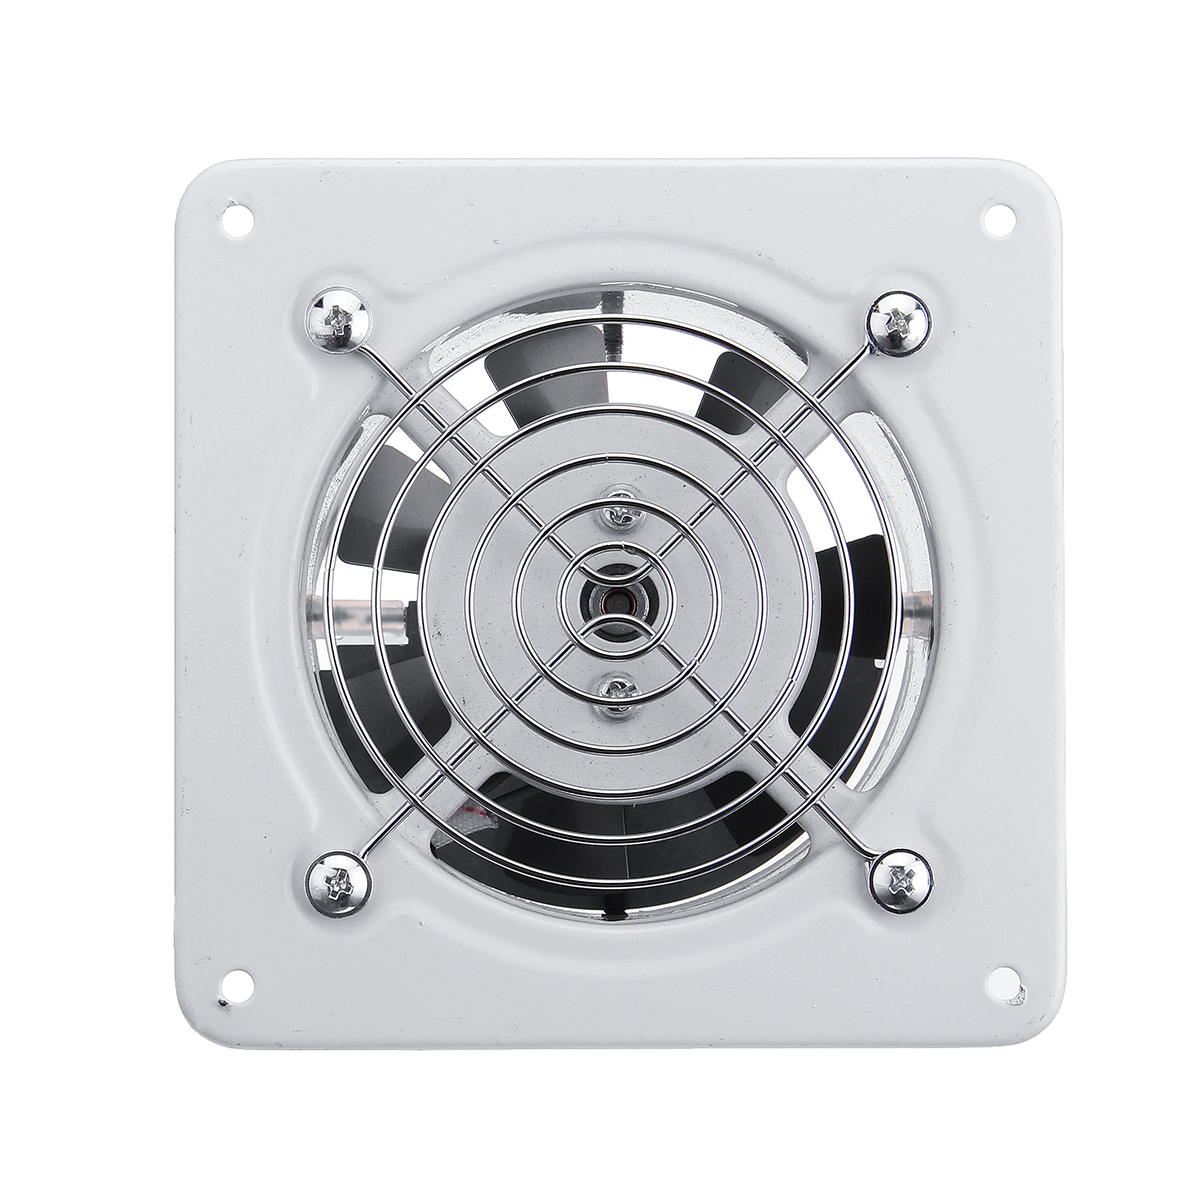 Latest Collection Of 4'' 220v 25w Exhaust Fan Window-type Silent Wall Extractor Air Vents Fan Window Bathroom Kitchen Toilet Ventilation Fan Be Friendly In Use